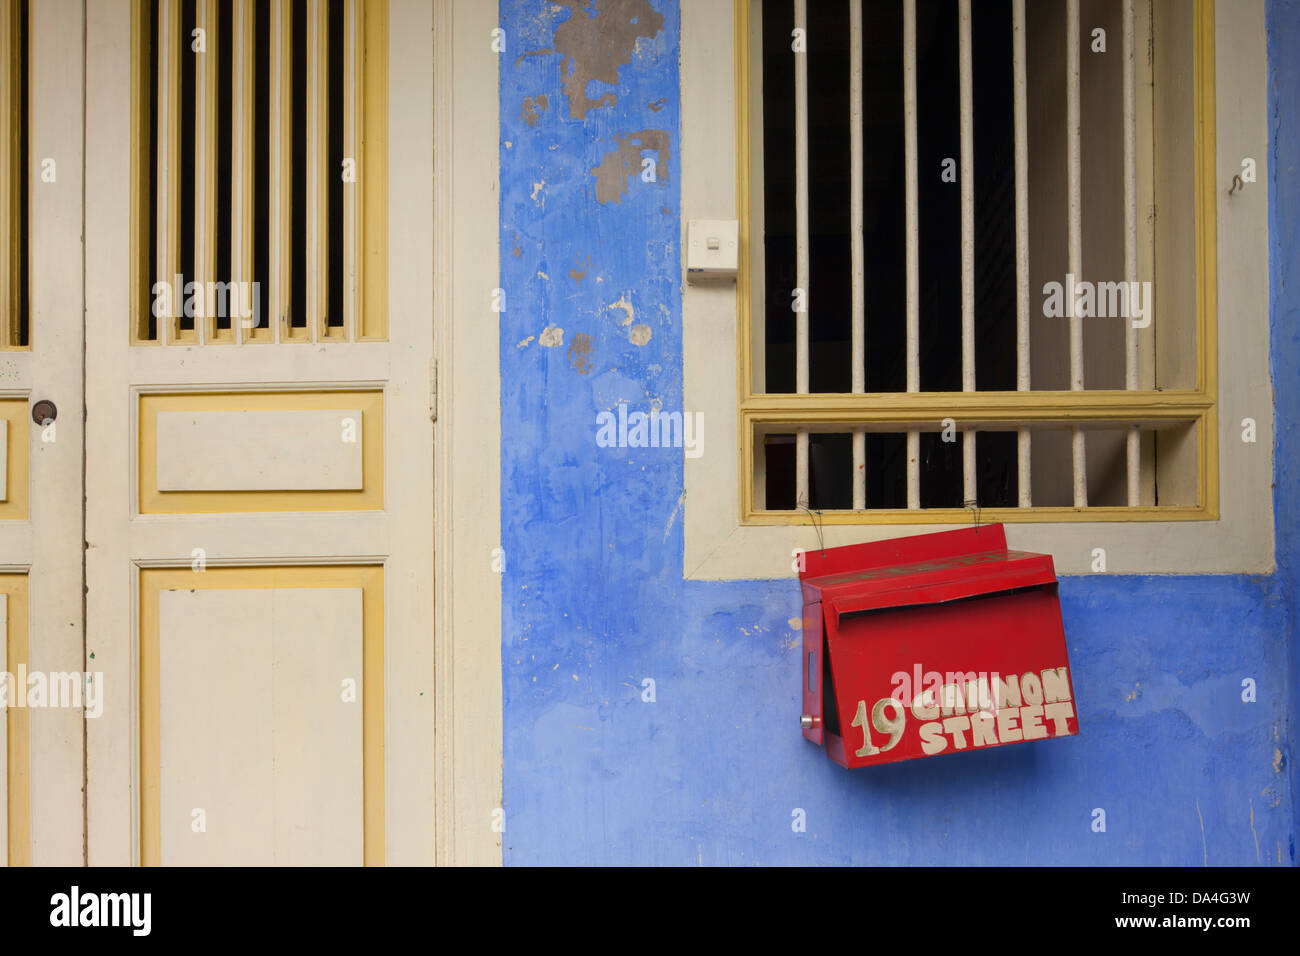 Colourful doorway, Georgetown, Penang, Malaysia - Stock Image